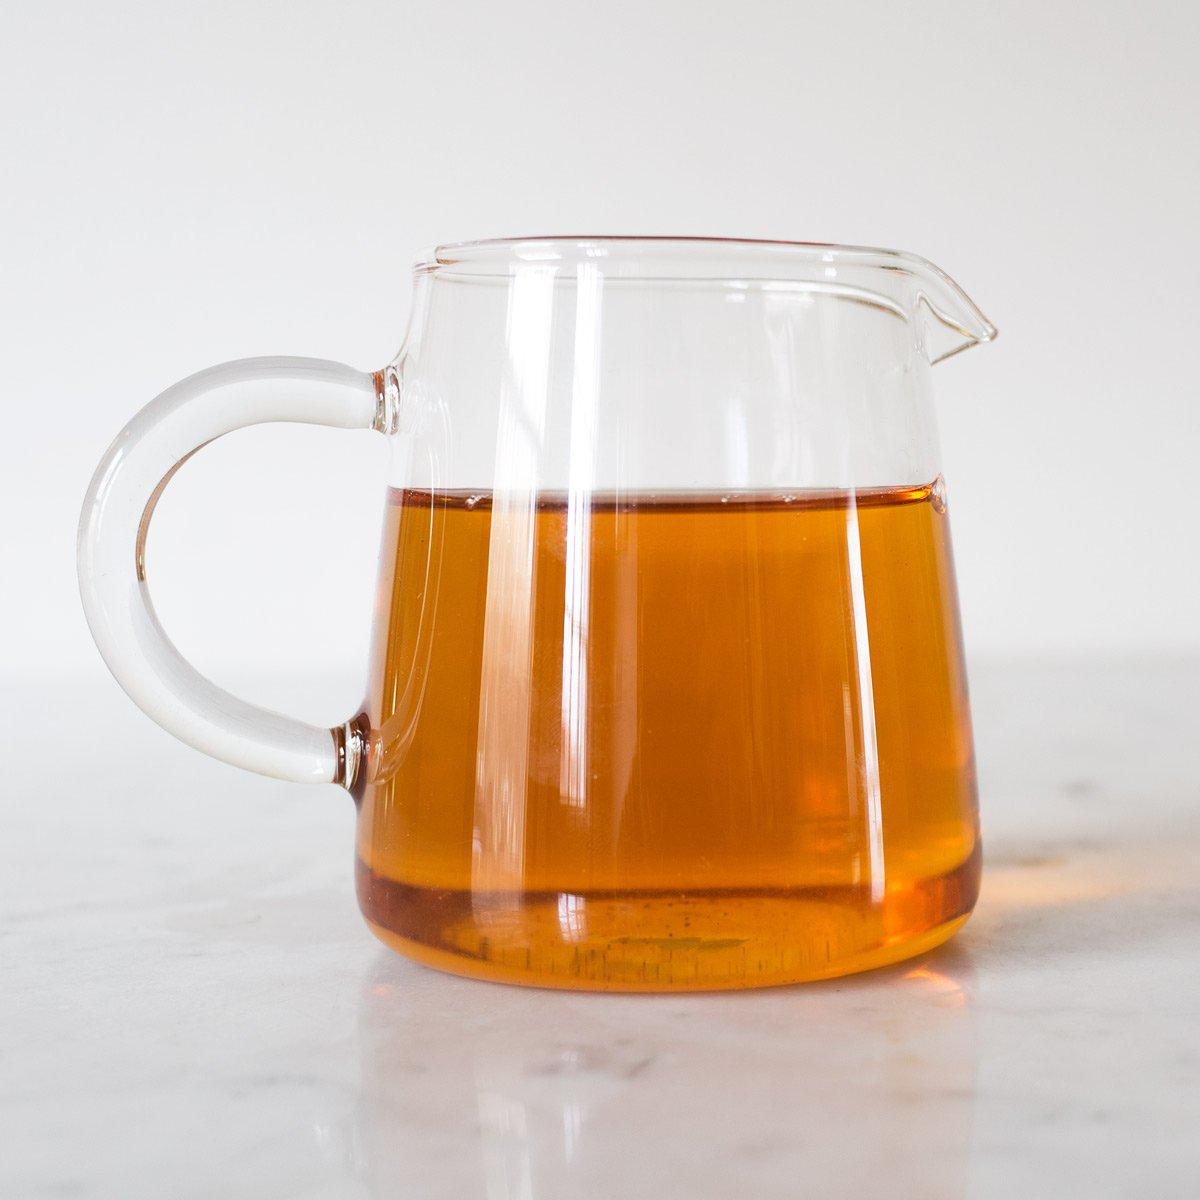 Glass Tea Pitcher - Share Cup